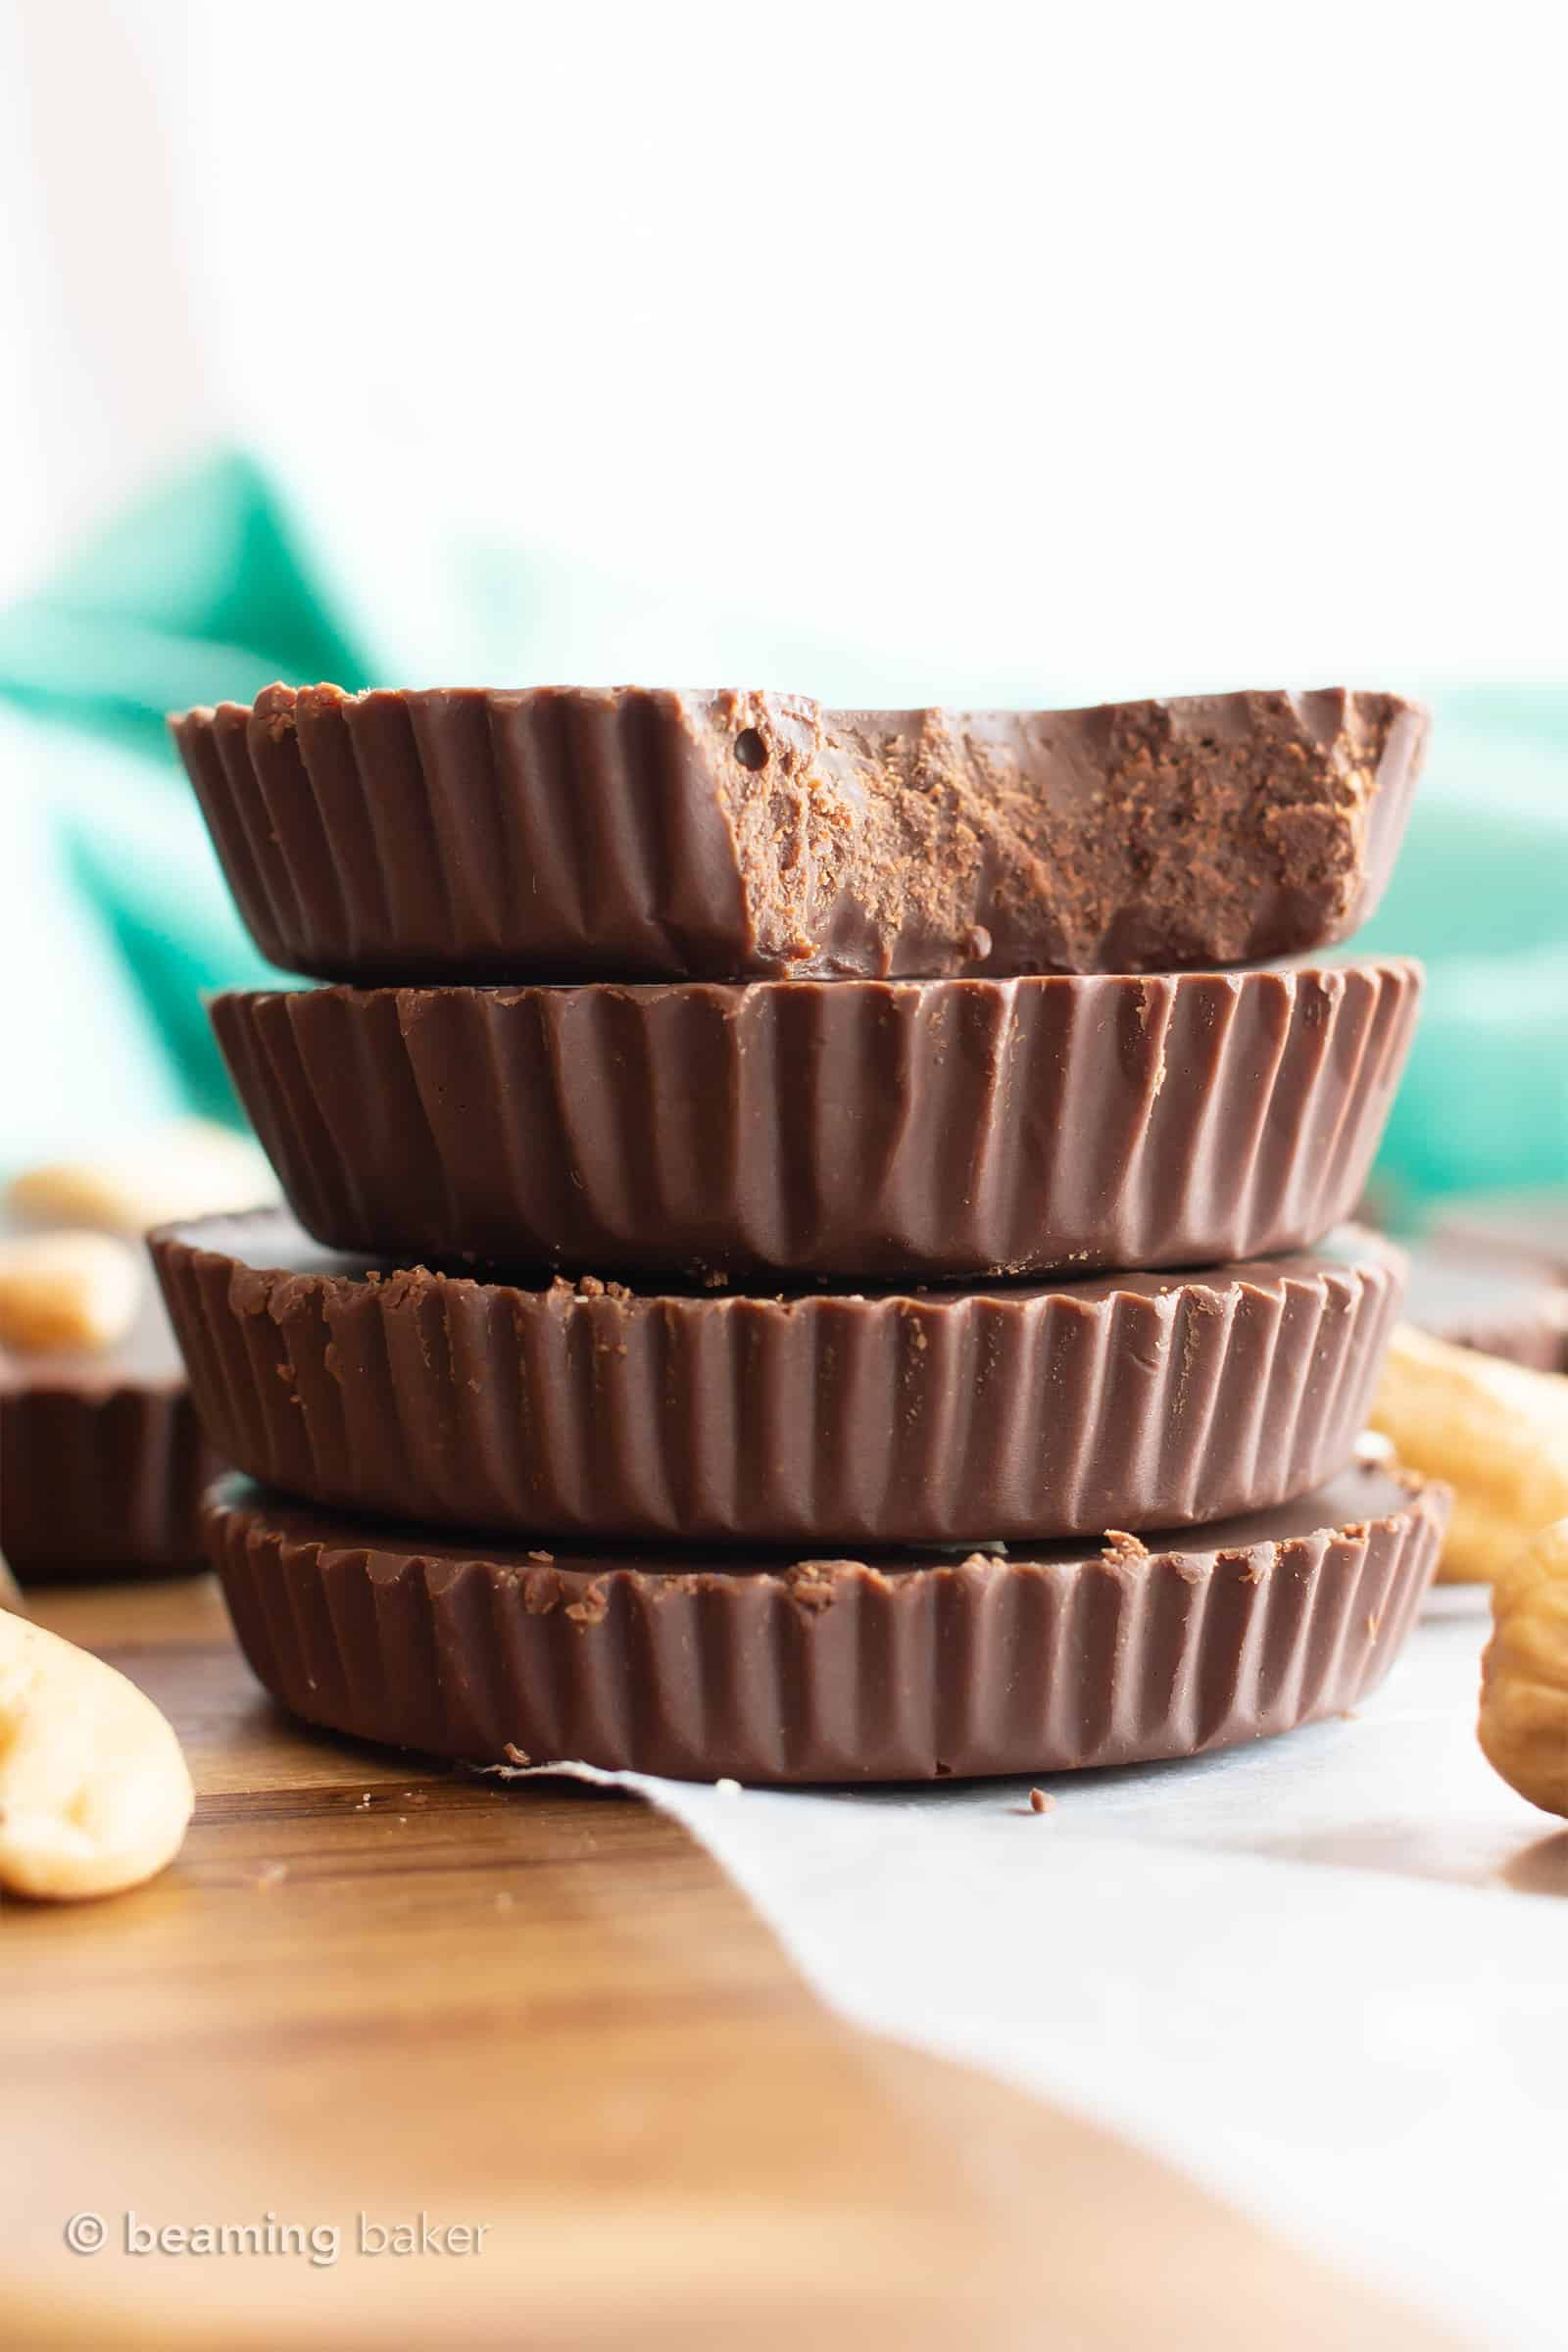 Low Carb Chocolate Fudge Cups Recipe: easy keto chocolate fudge cups made with cashew butter! The best Keto fudge recipe—low carb fudge cups bursting with rich chocolate flavor. #LowCarb #Keto #SugarFree #DairyFree | Recipe at BeamingBaker.com